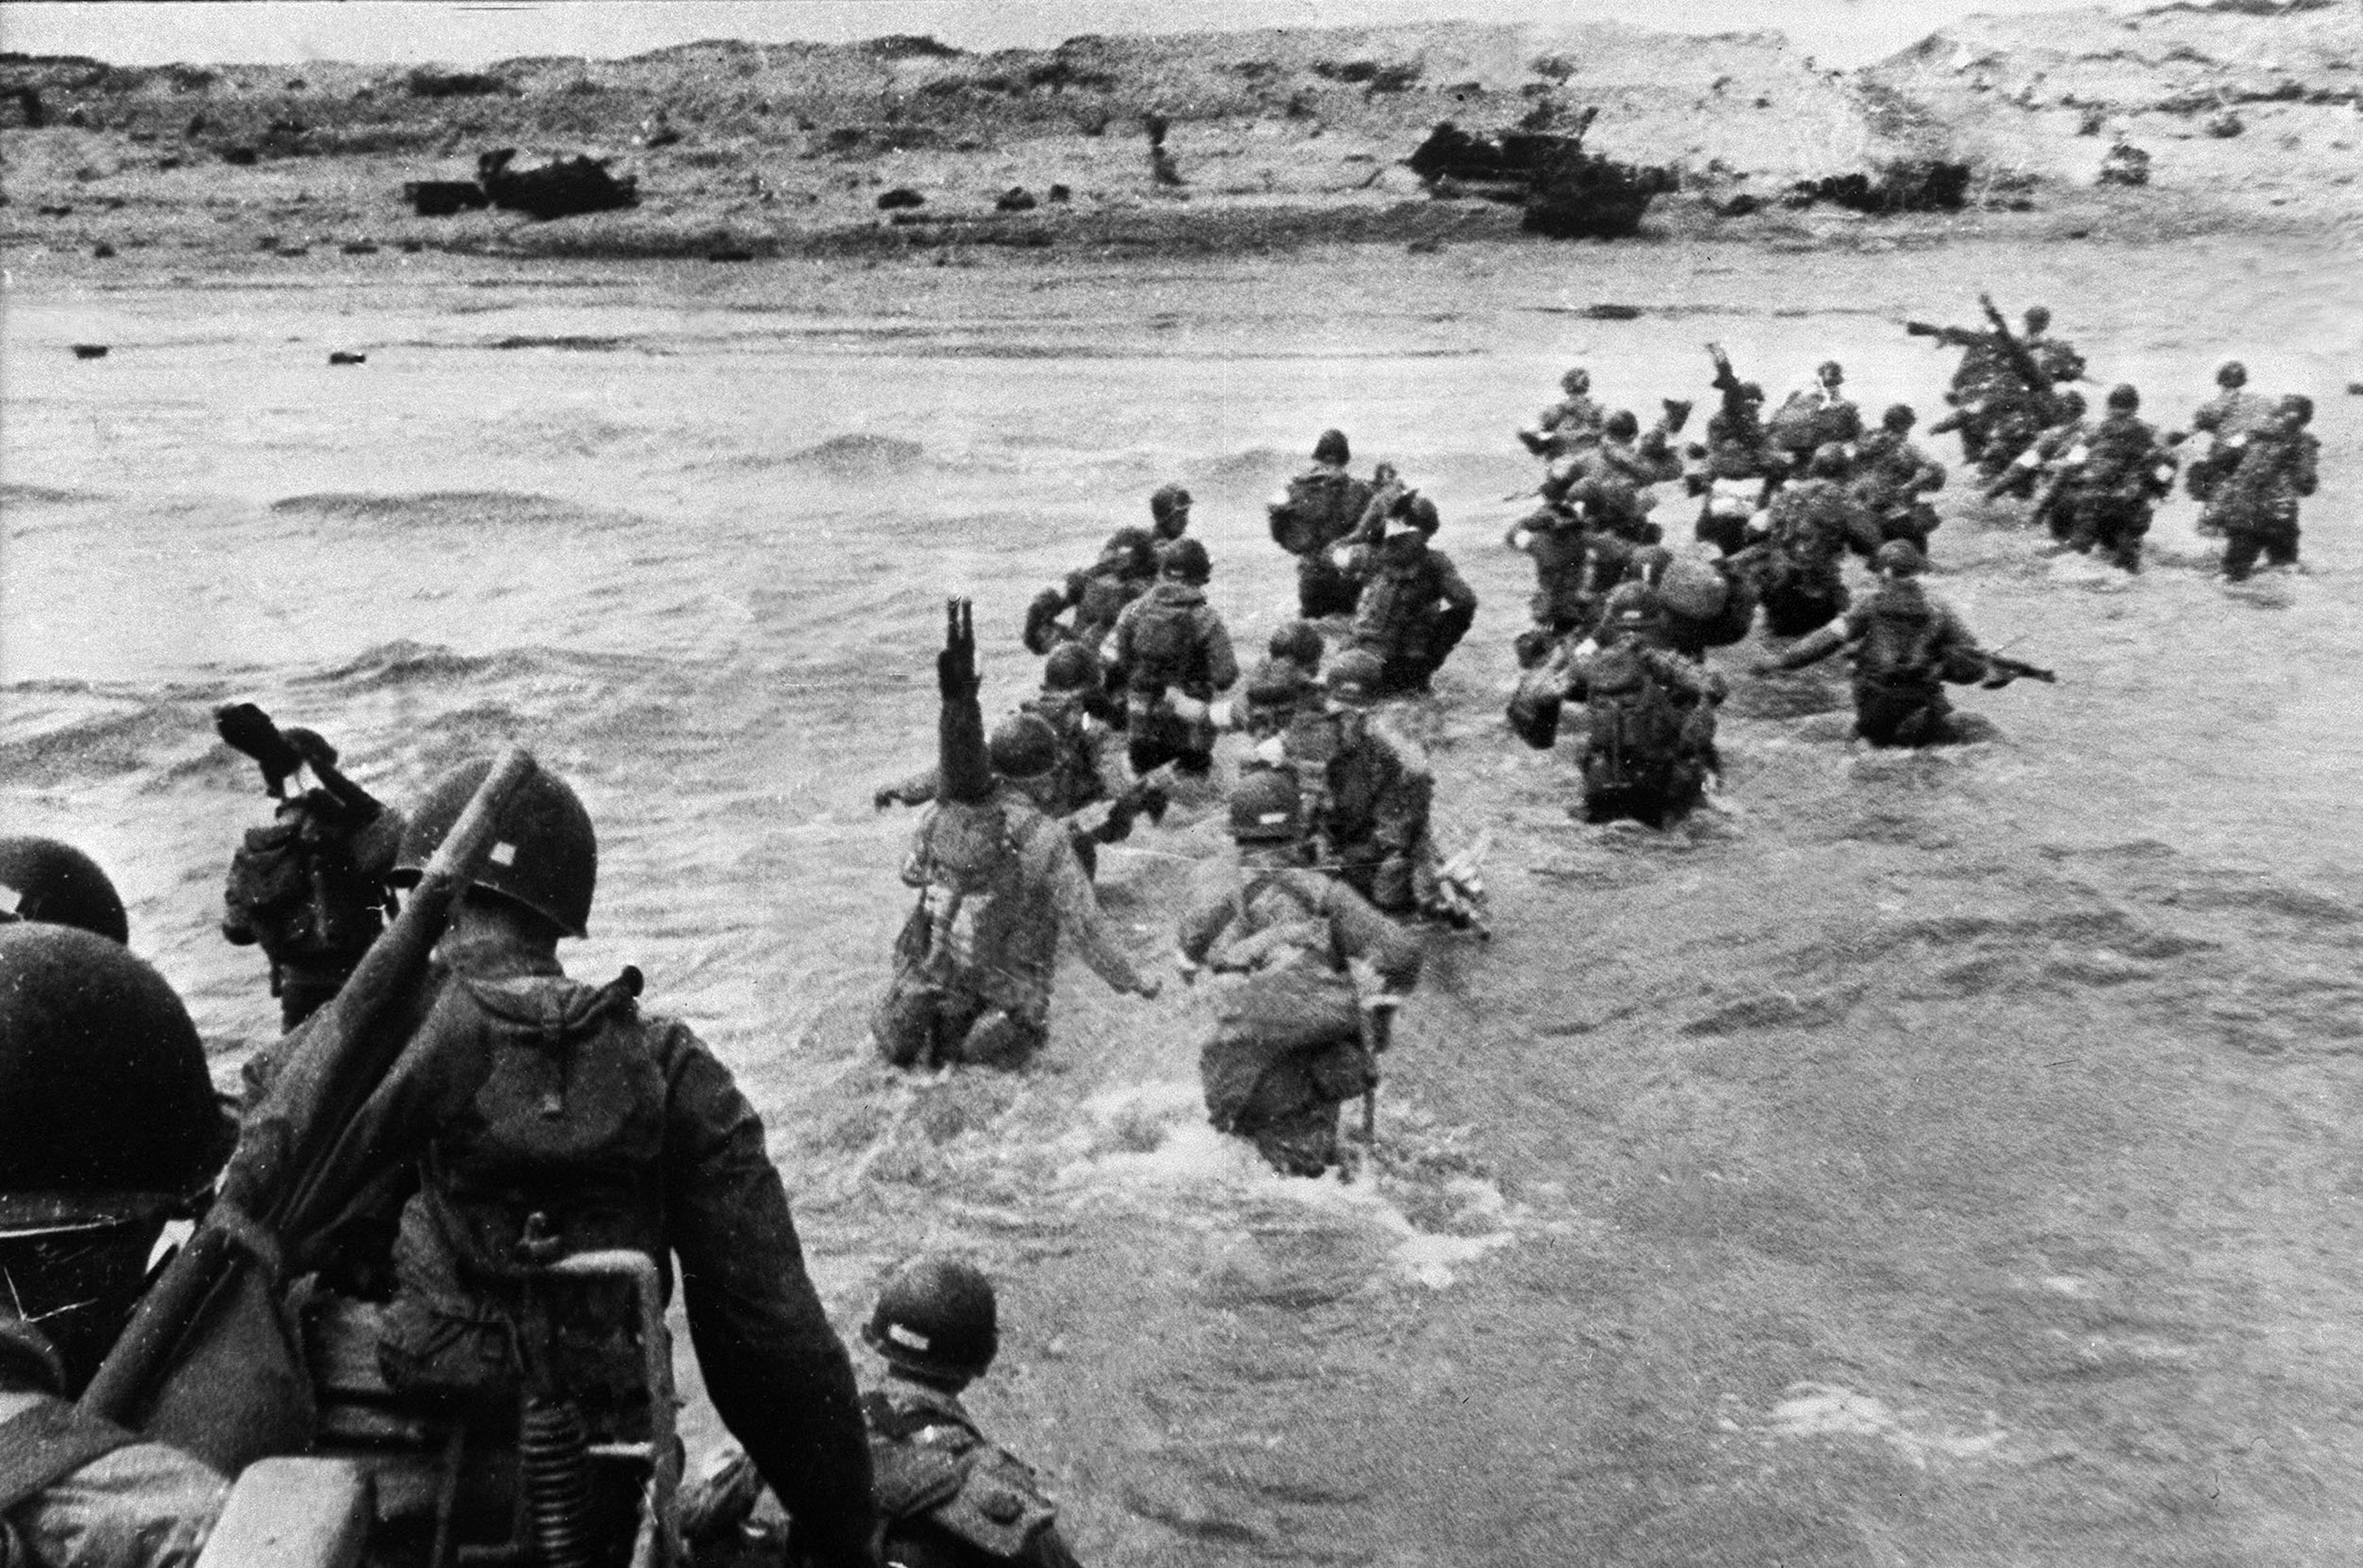 American troops landed on Normandy beaches to come as reinforcements during the historic D-Day, 06 June 1944, during WW2. (STF/AFP/Getty Images)